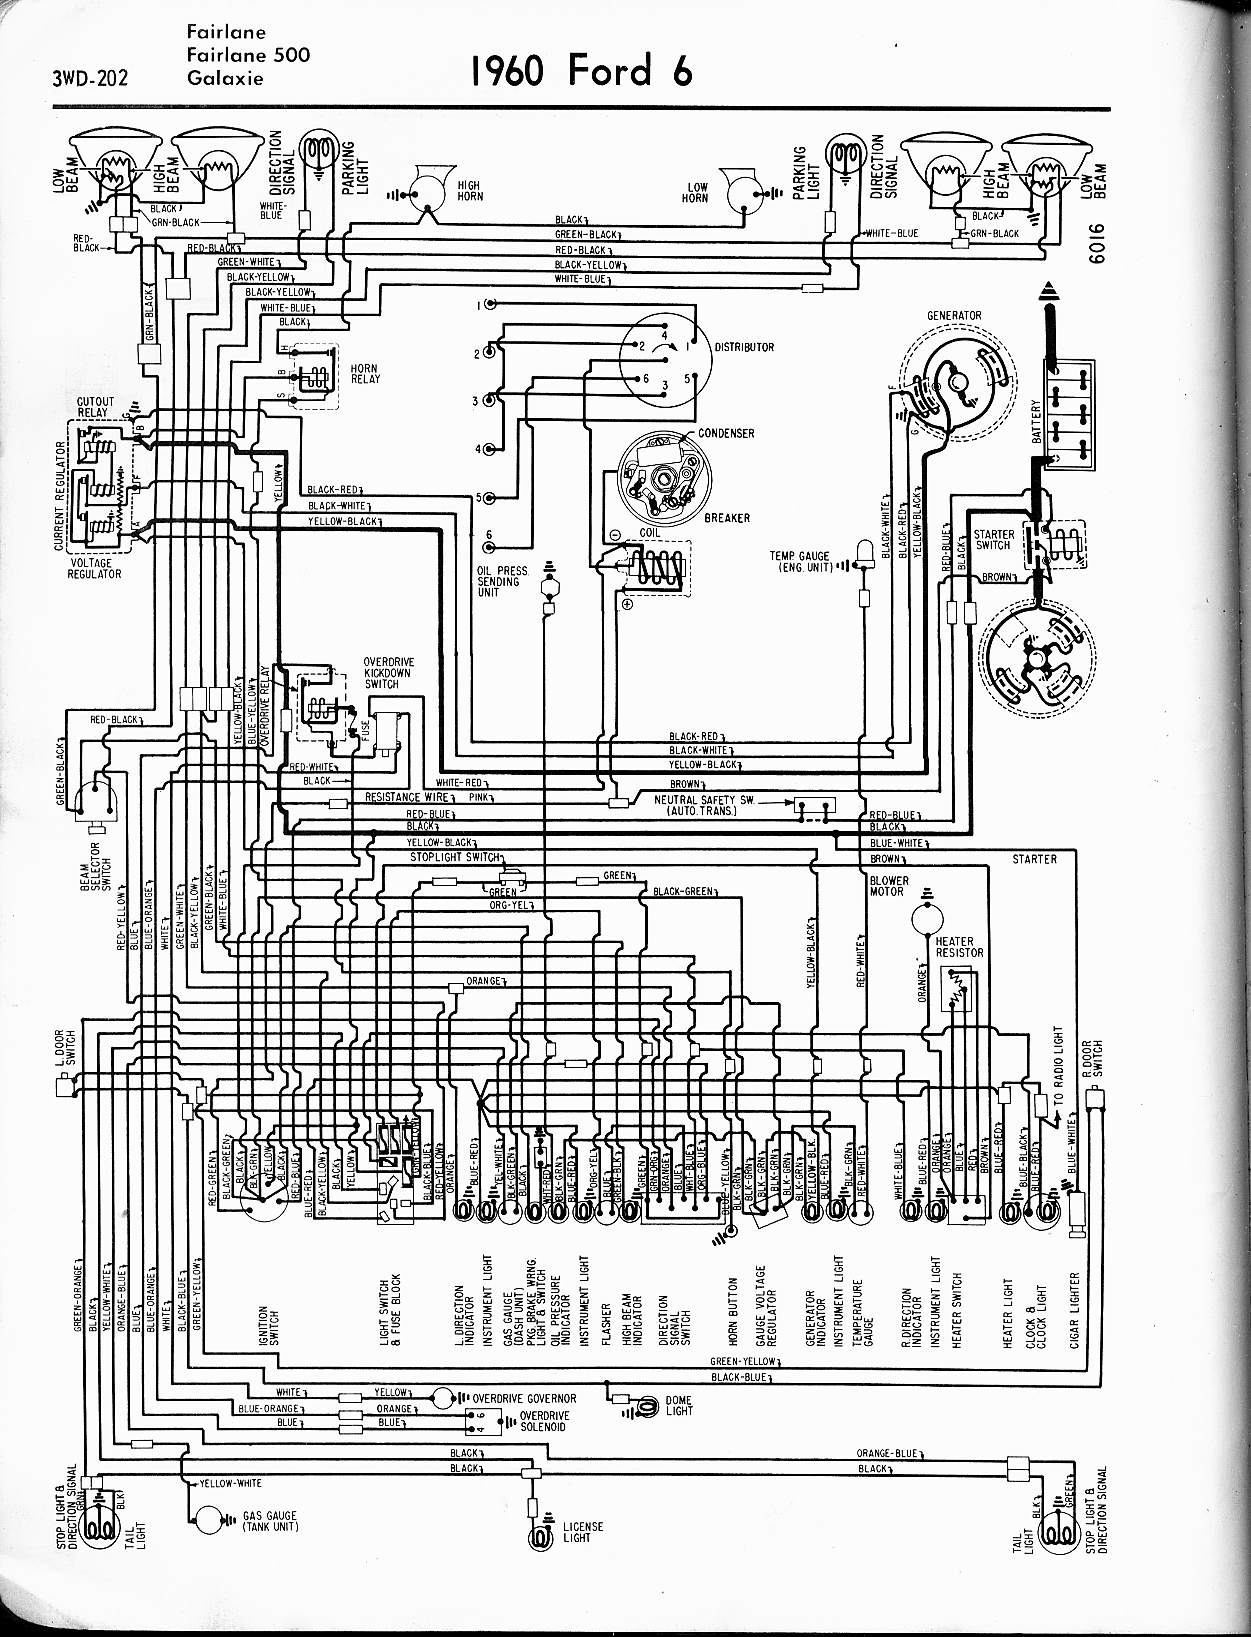 Wiring Diagram For 1967 Dodge Coro also 1965 Wiring Diagram Vintage Dodge Coro 2 in addition Disney Valentines Day Coloring Pages furthermore 1993 Corvette Parts further 1967 Gto Wiring Harness Diagram. on dodge coronet 500